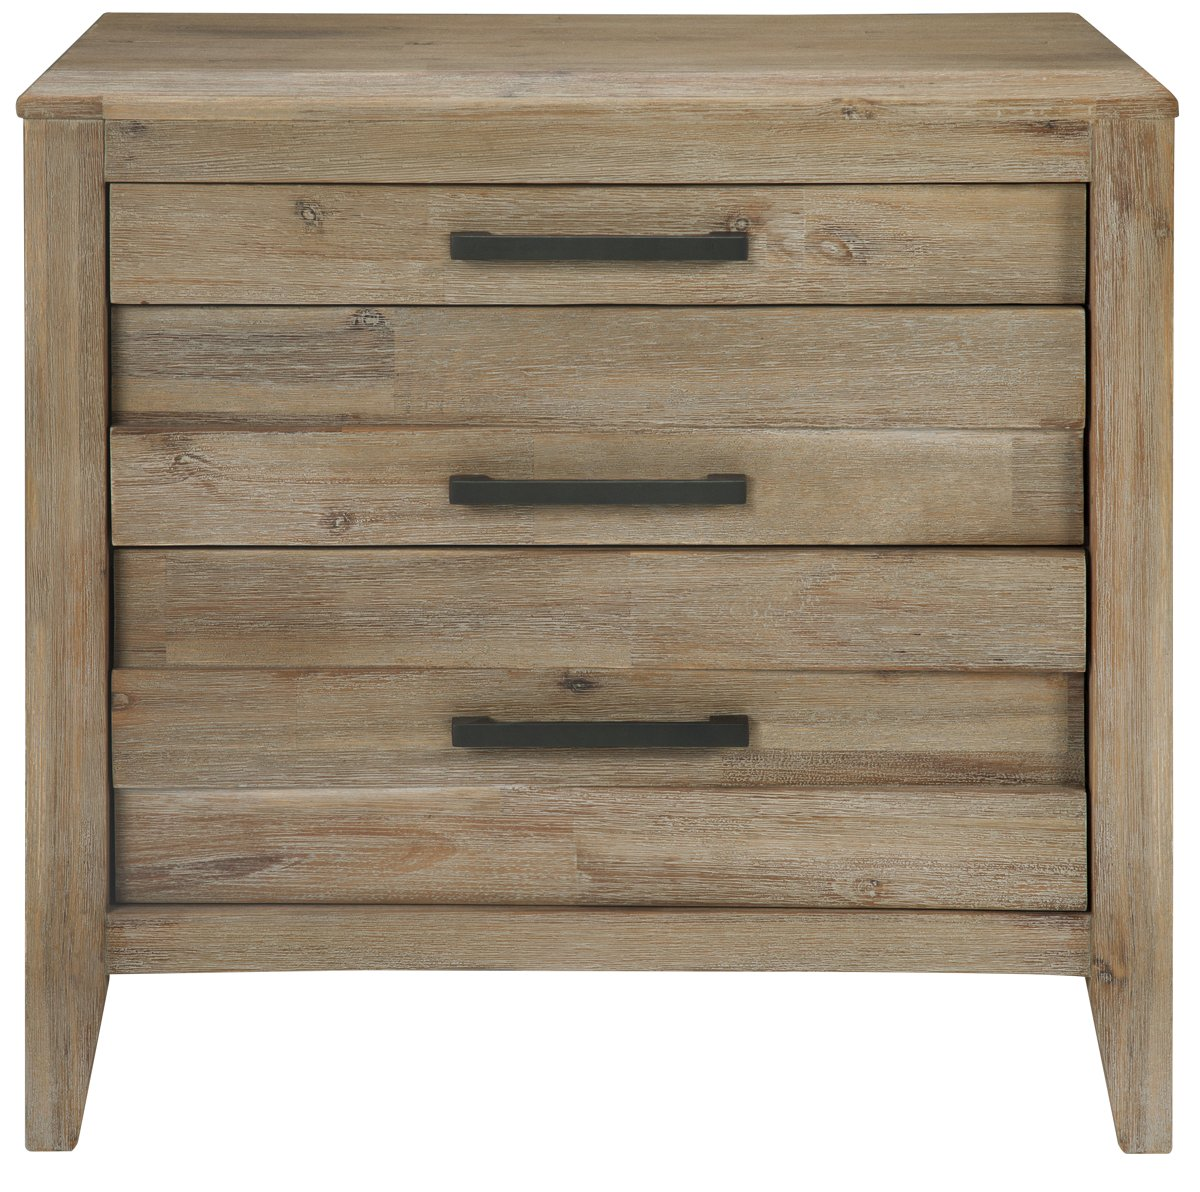 Casablanca Light Tone Wood Nightstand